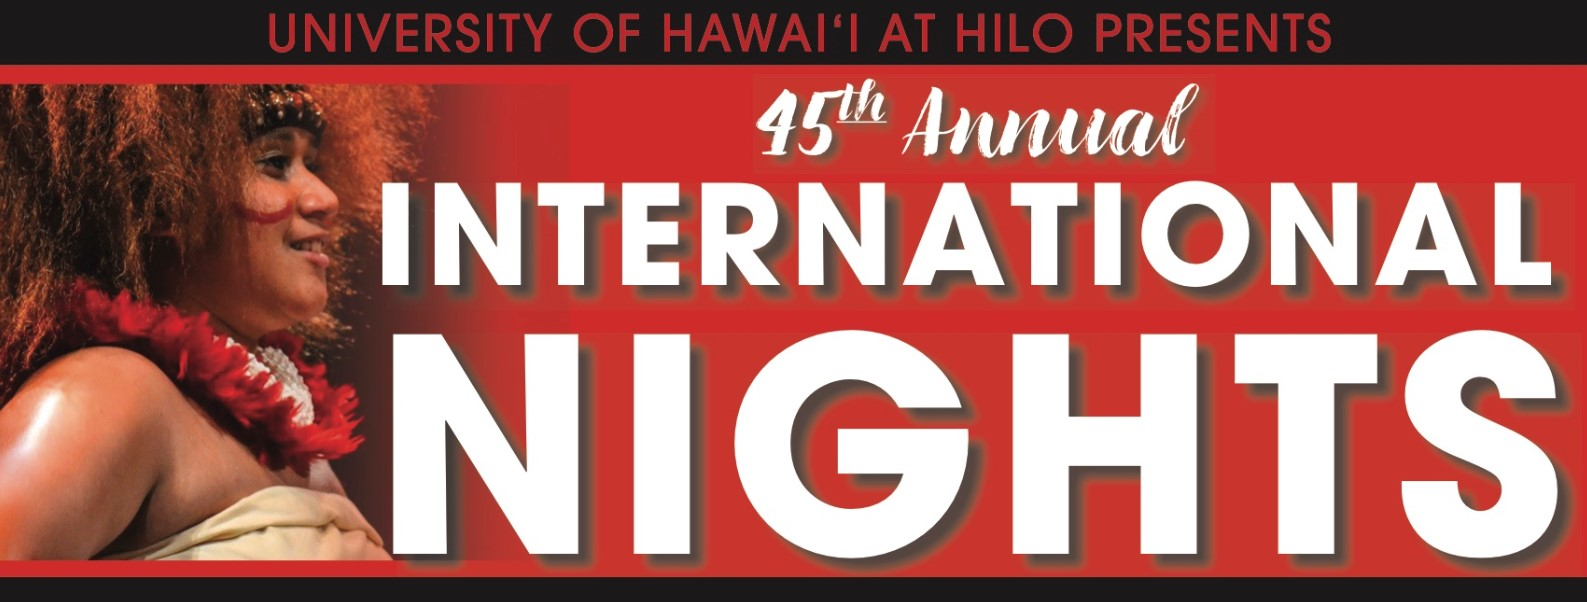 Banner: University of Hawaii at Hilo 45th Annual International Nights